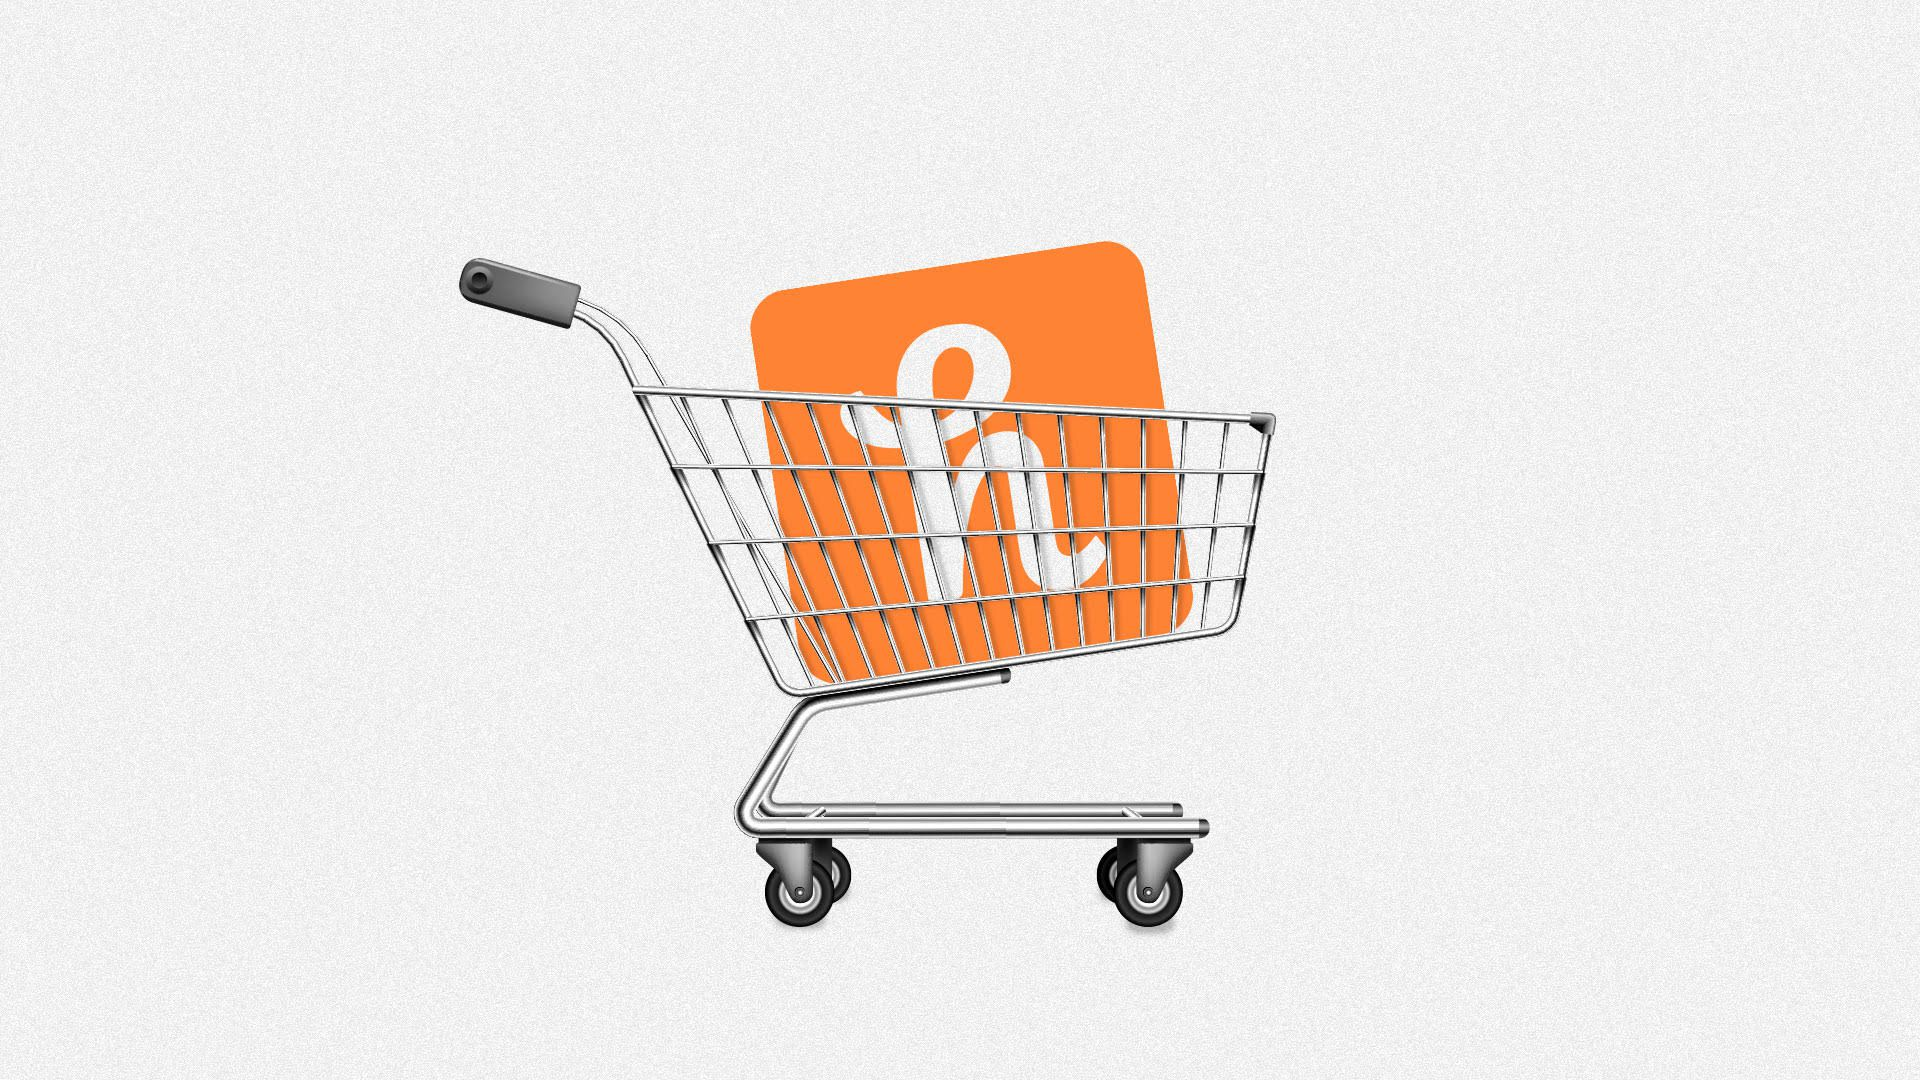 Illustration of shopping cart carrying Honey icon.